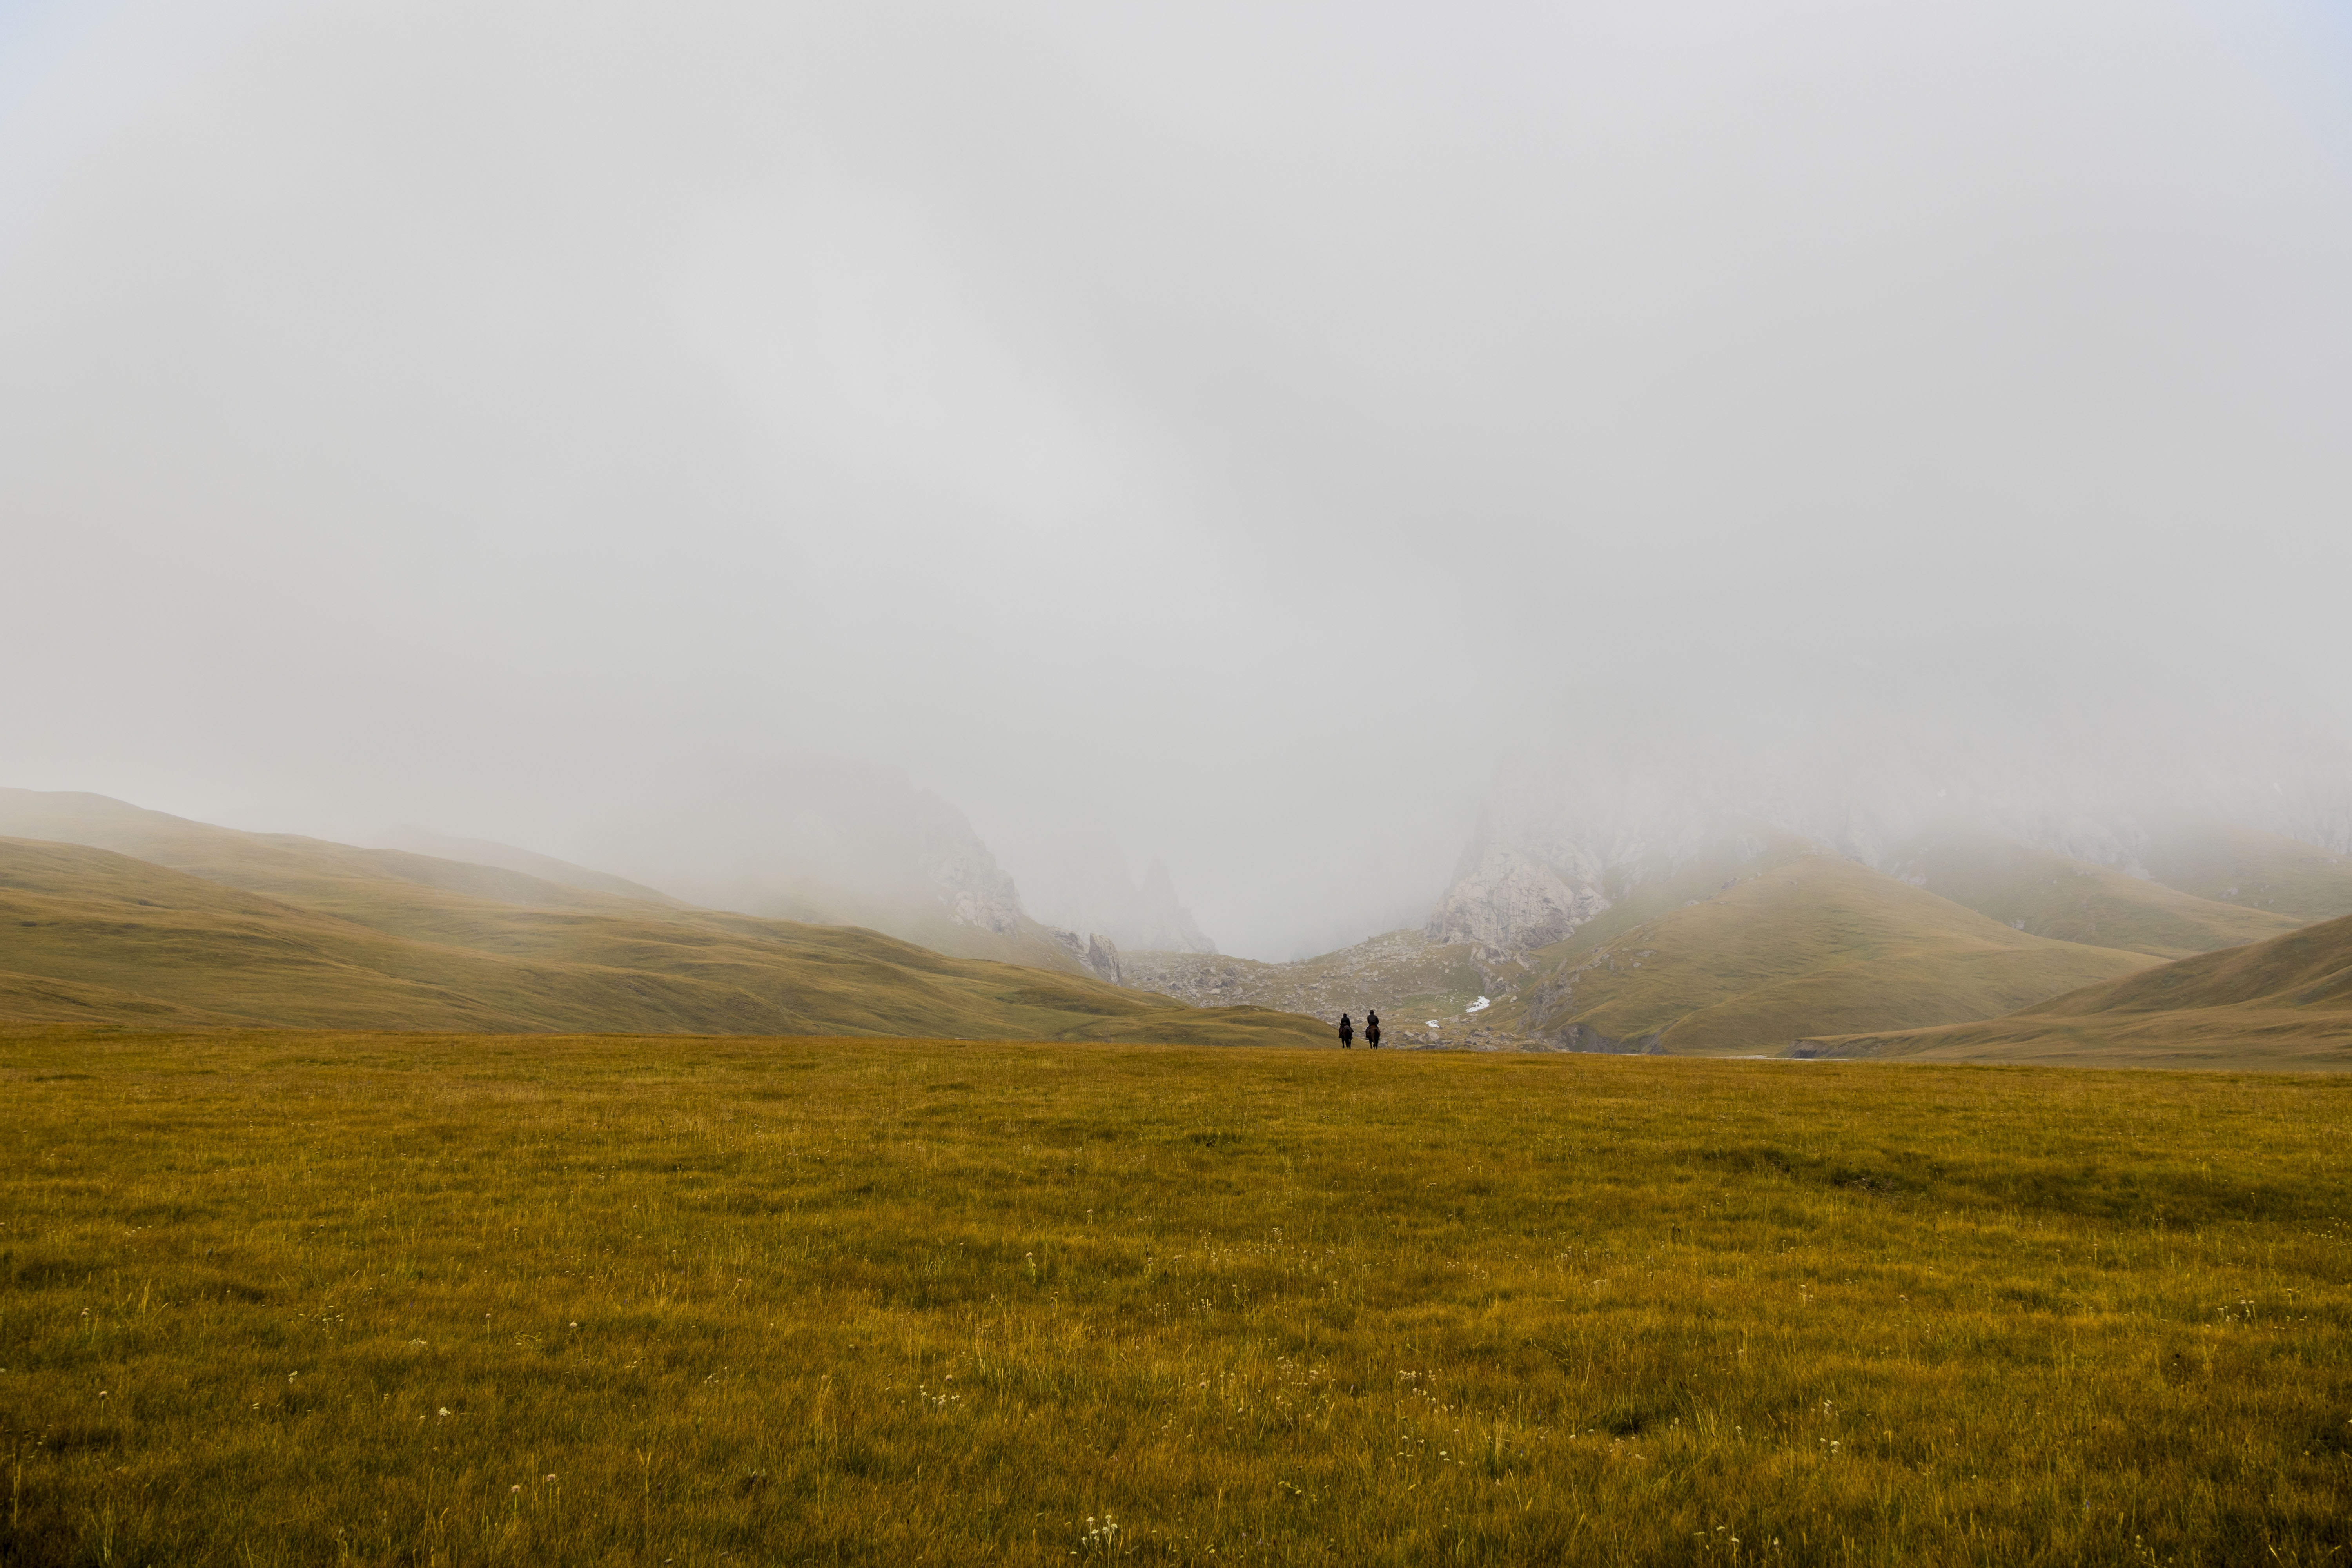 two person in brown grass field under gray sky